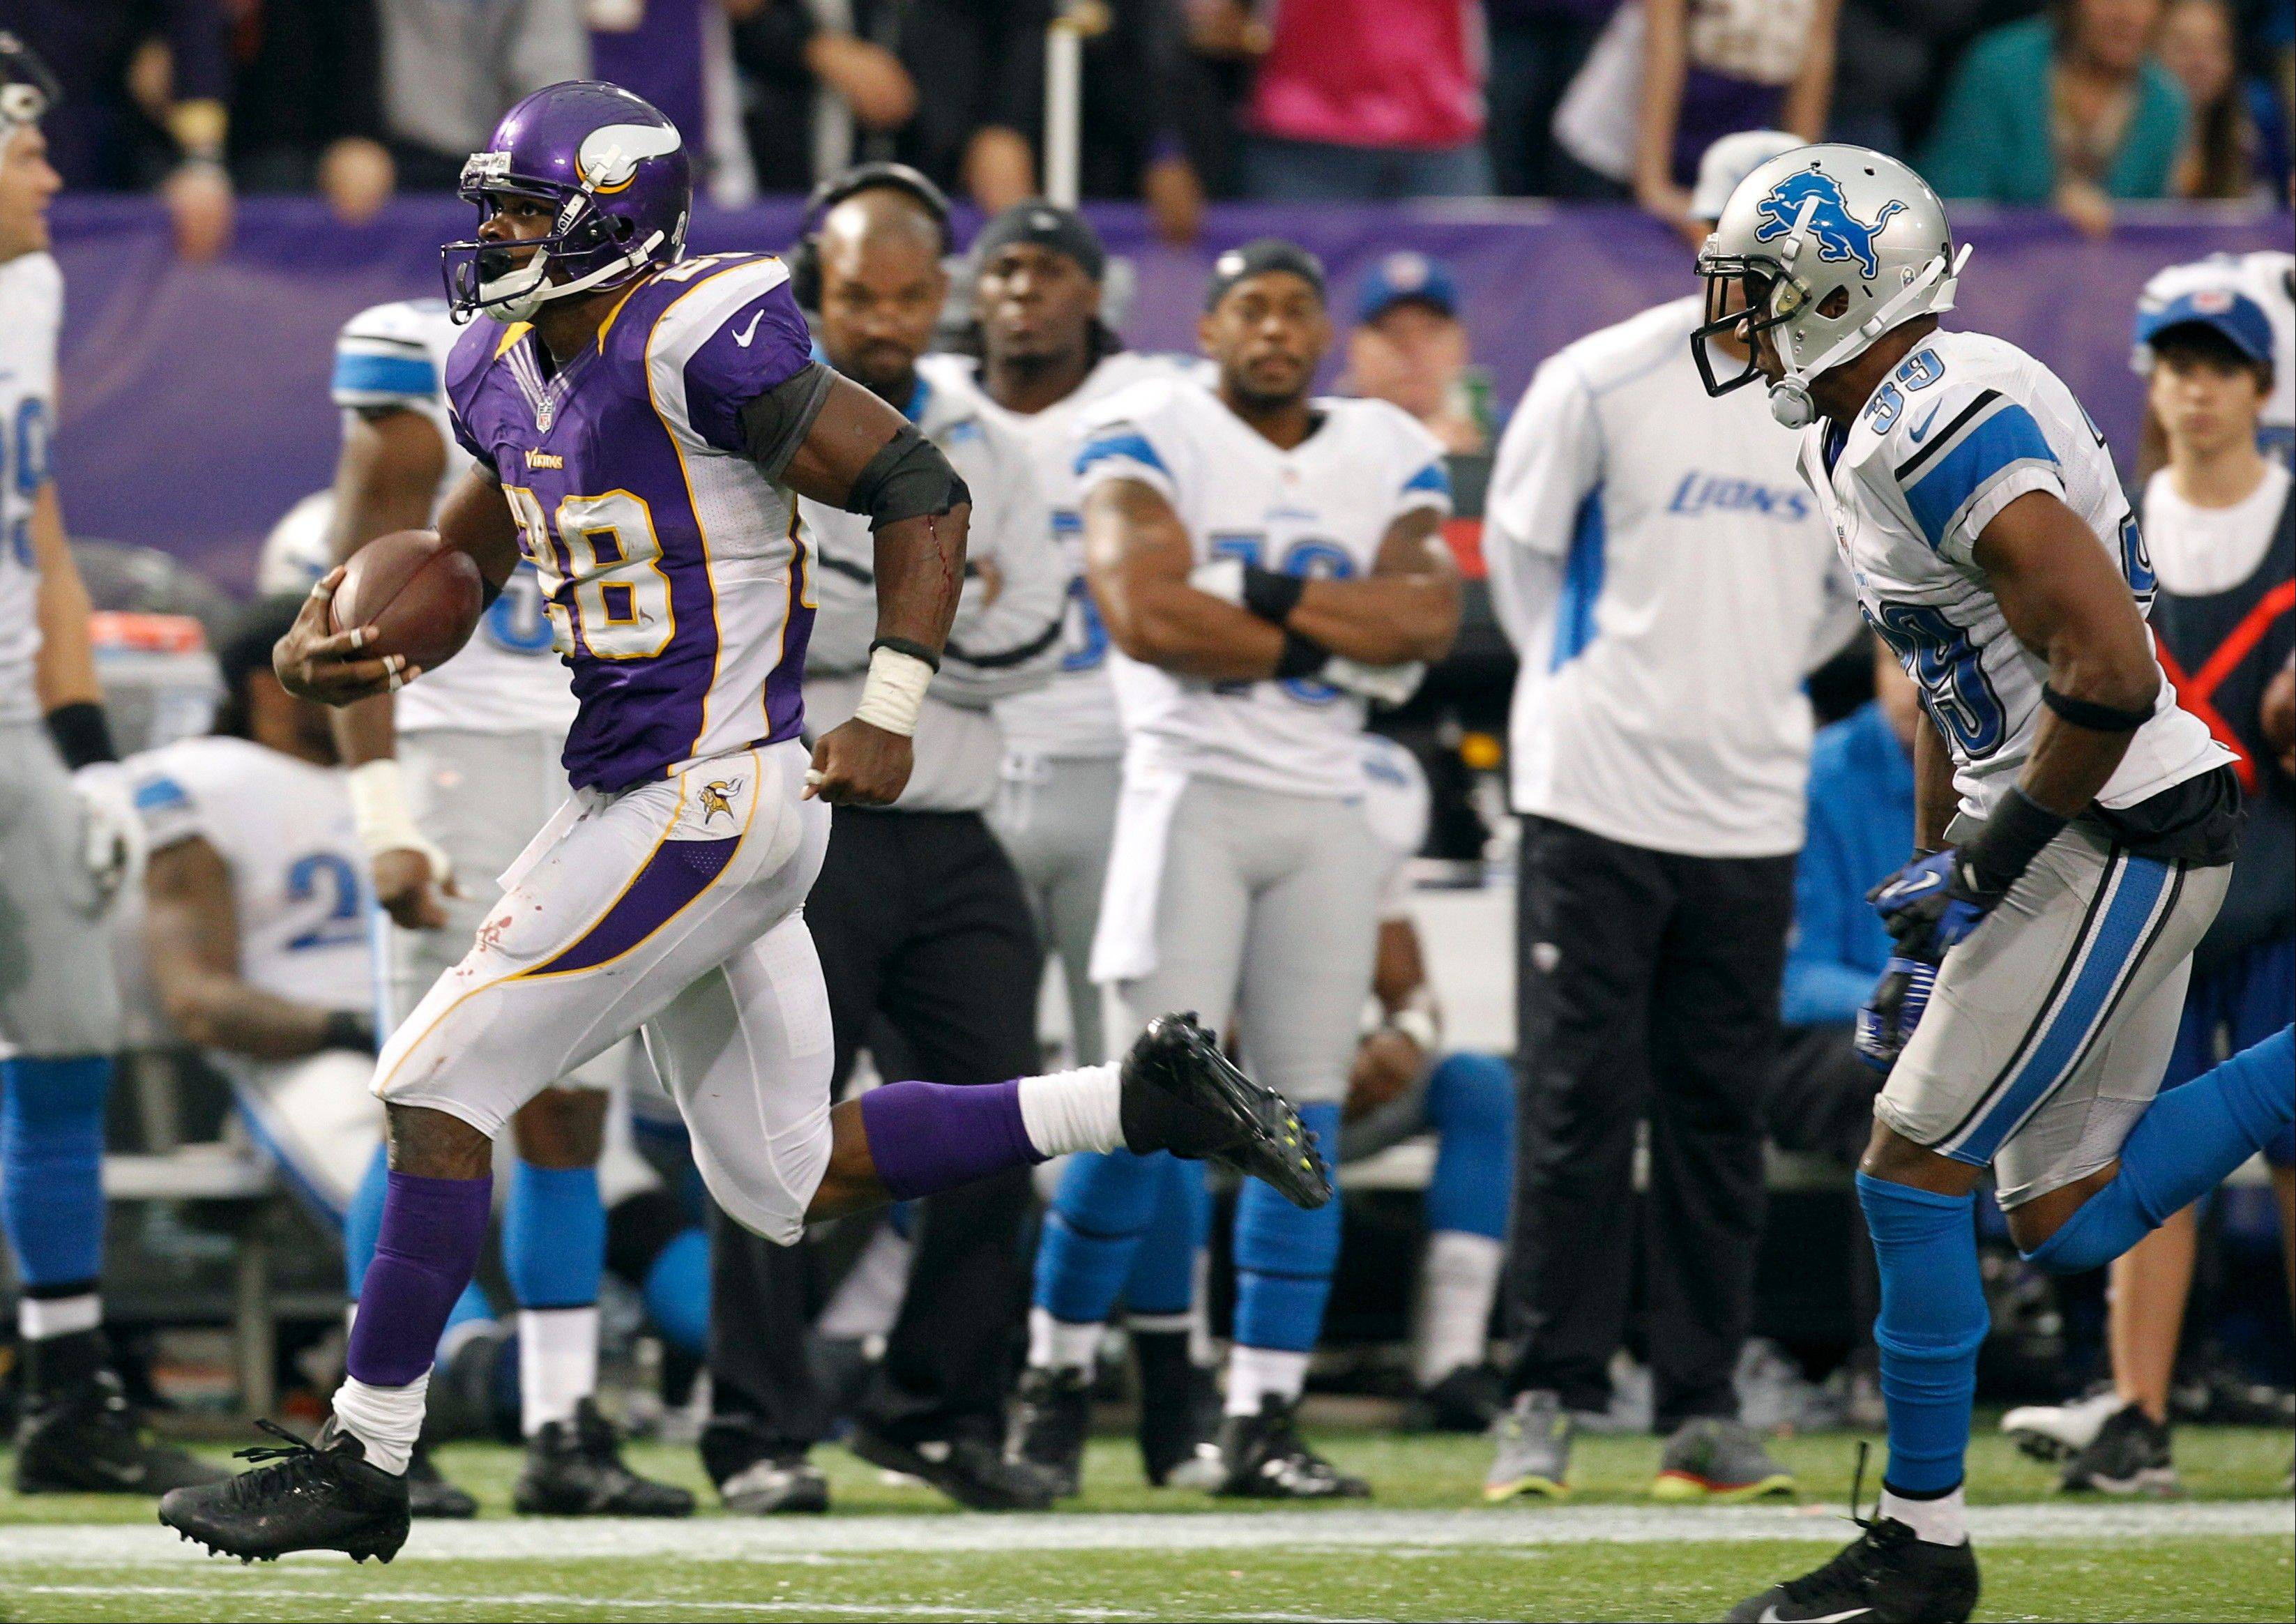 Less than a year after major knee surgery, Vikings running back Adrian Peterson is on pace to finish with the best season of his career.